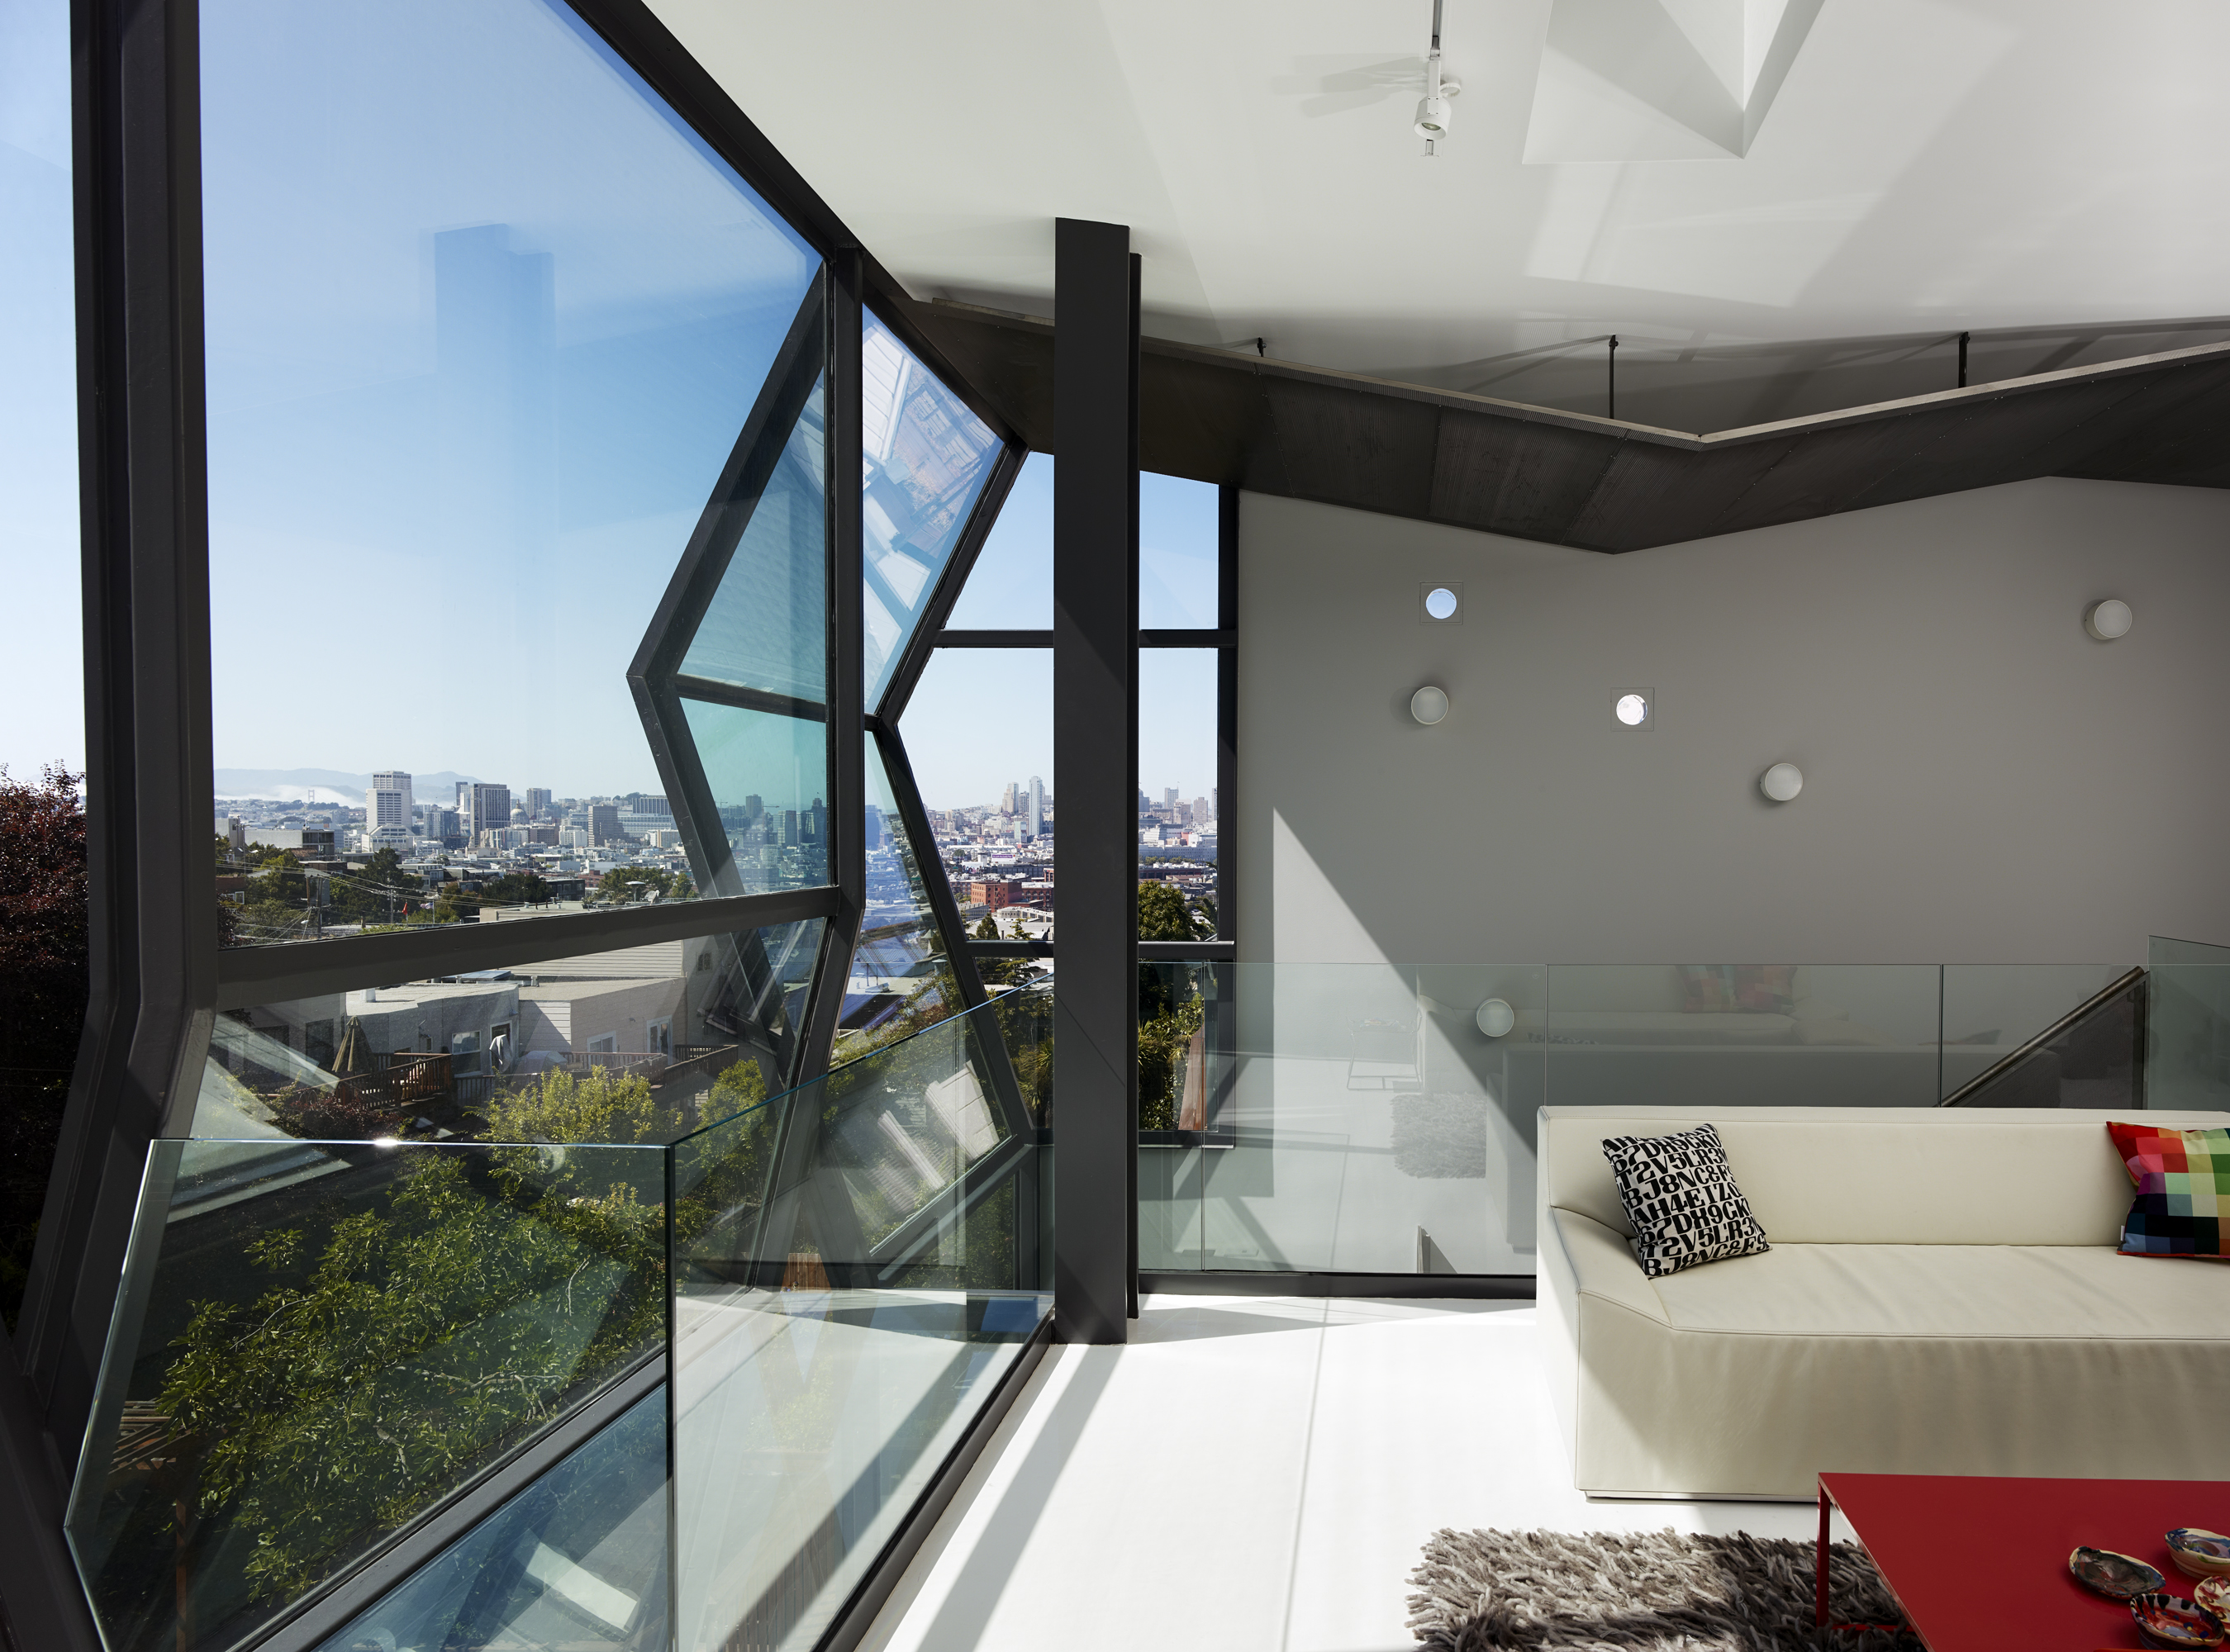 Here's a profile view of the back of the home, showcasing both the minimalist living room, with splashes of red and black, and the alternating prism shapes of the rear glass facade. Black sound dampener on the ceiling reflects the shape.